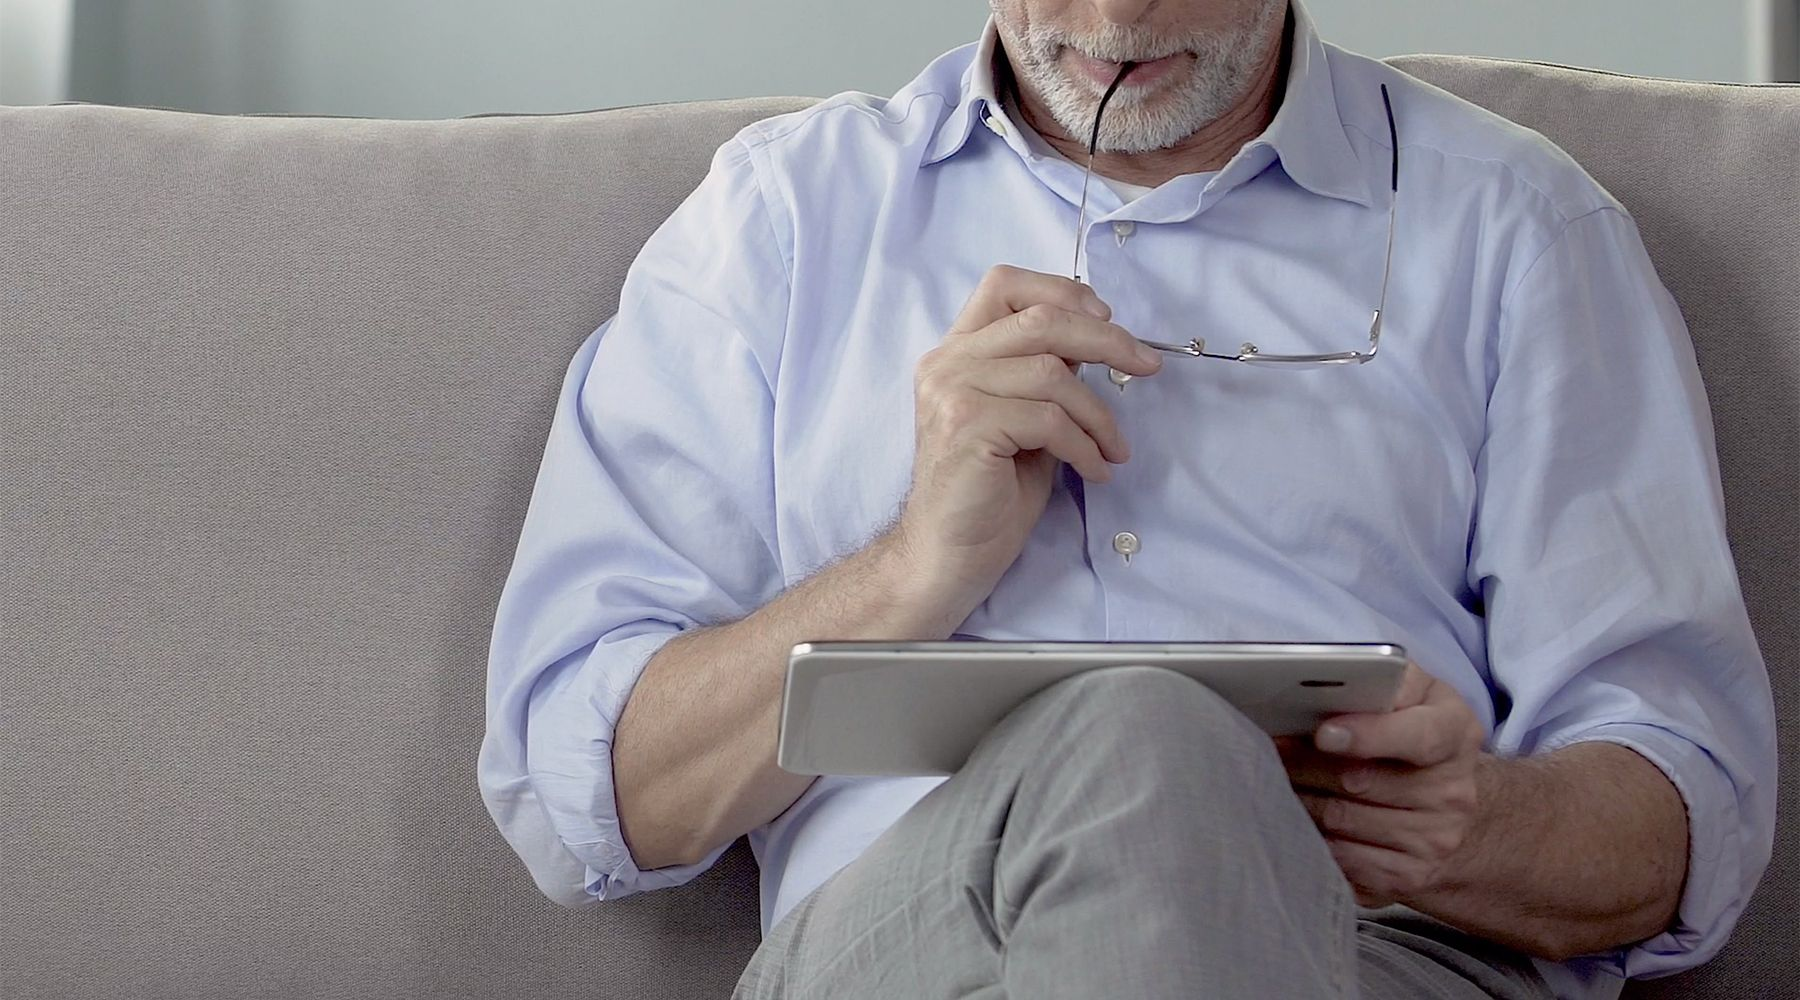 Image of a man looking at news on an iPad.